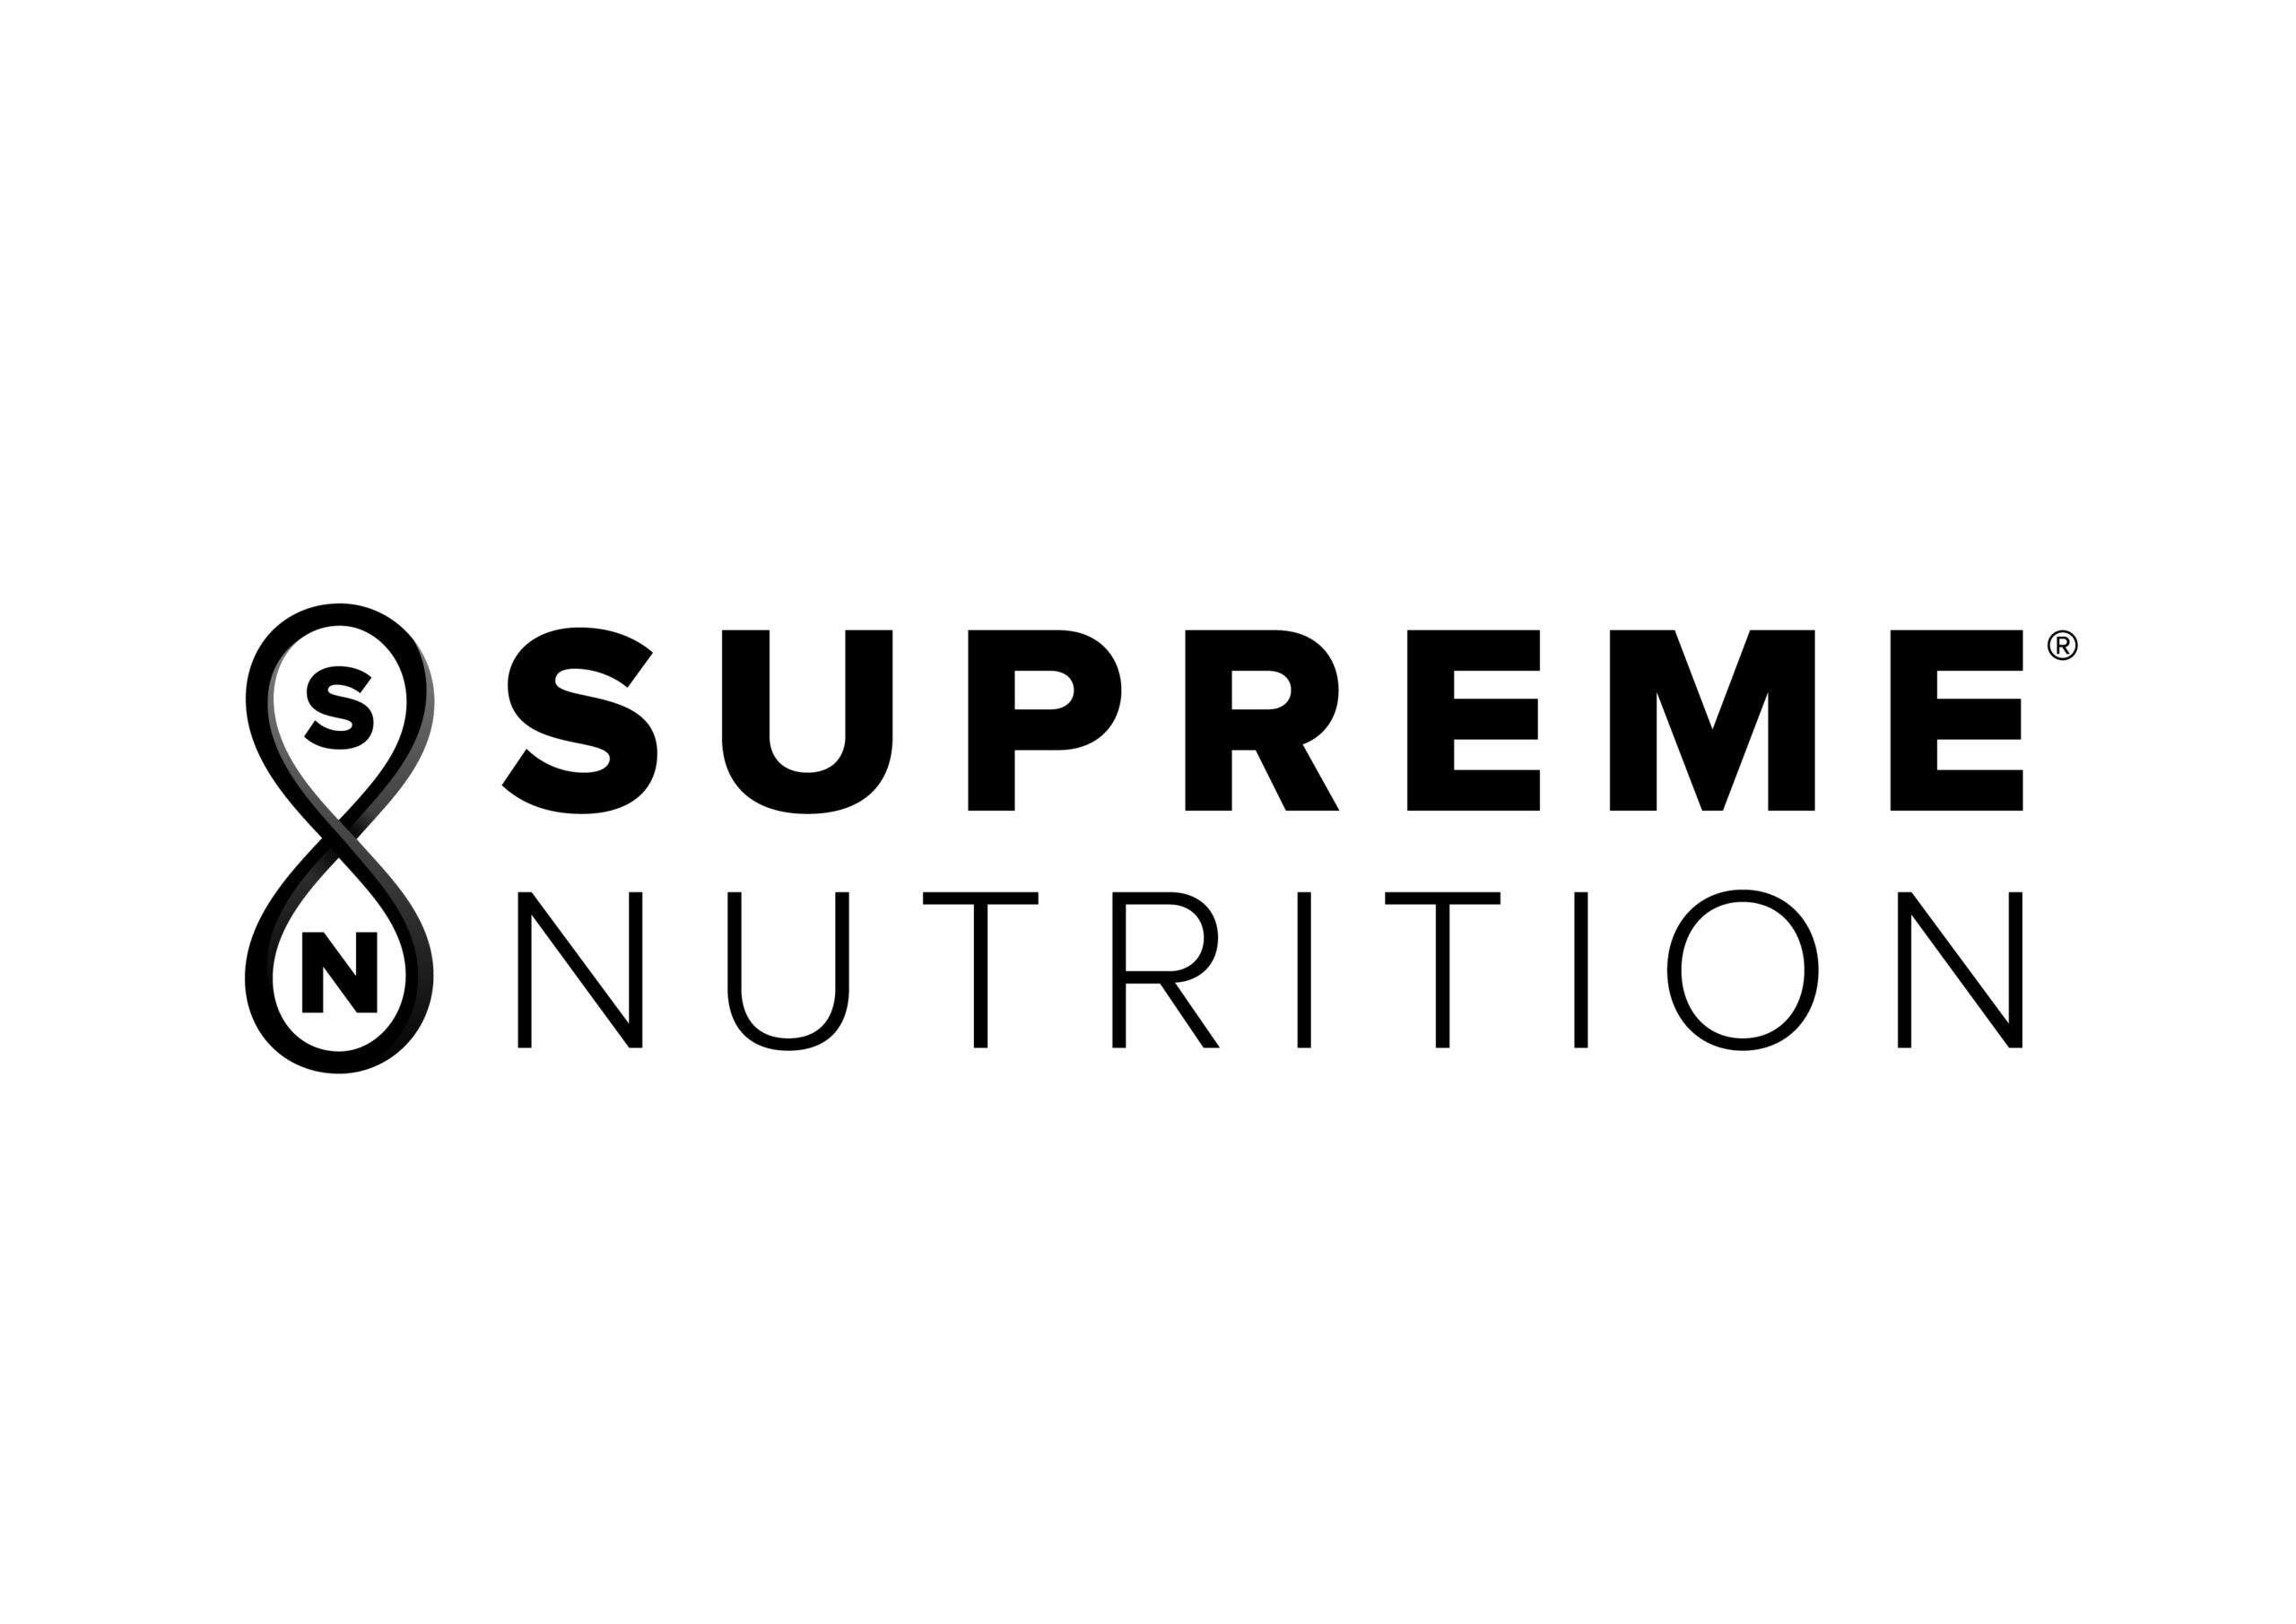 logo for nutritional company supreme nutrition